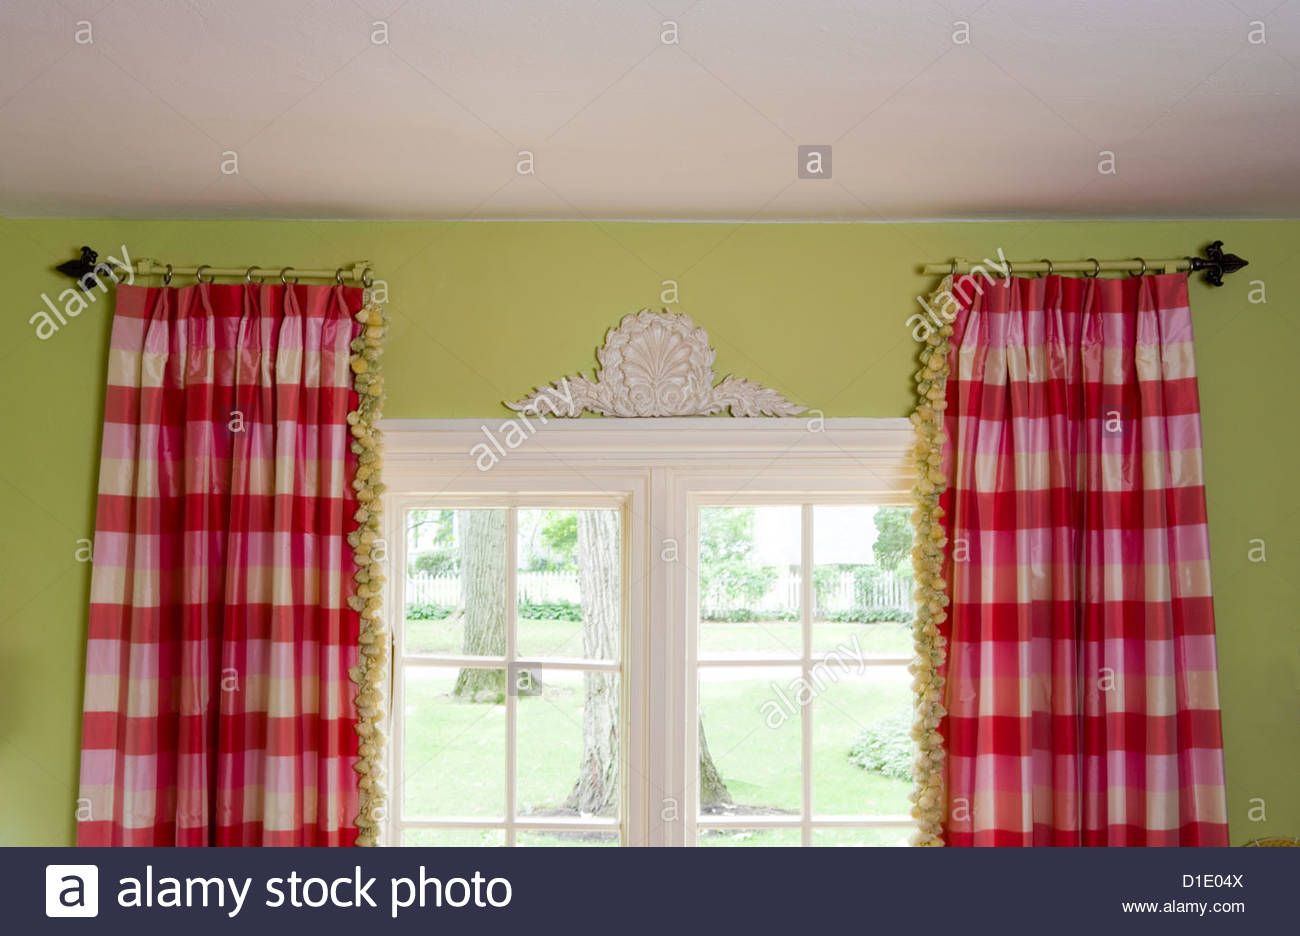 Black and white buffalo check curtains - Window Treatments Stationary Curtain Rods Hold Pink And White Buffalo Check Curtains With Green Tassel Trim